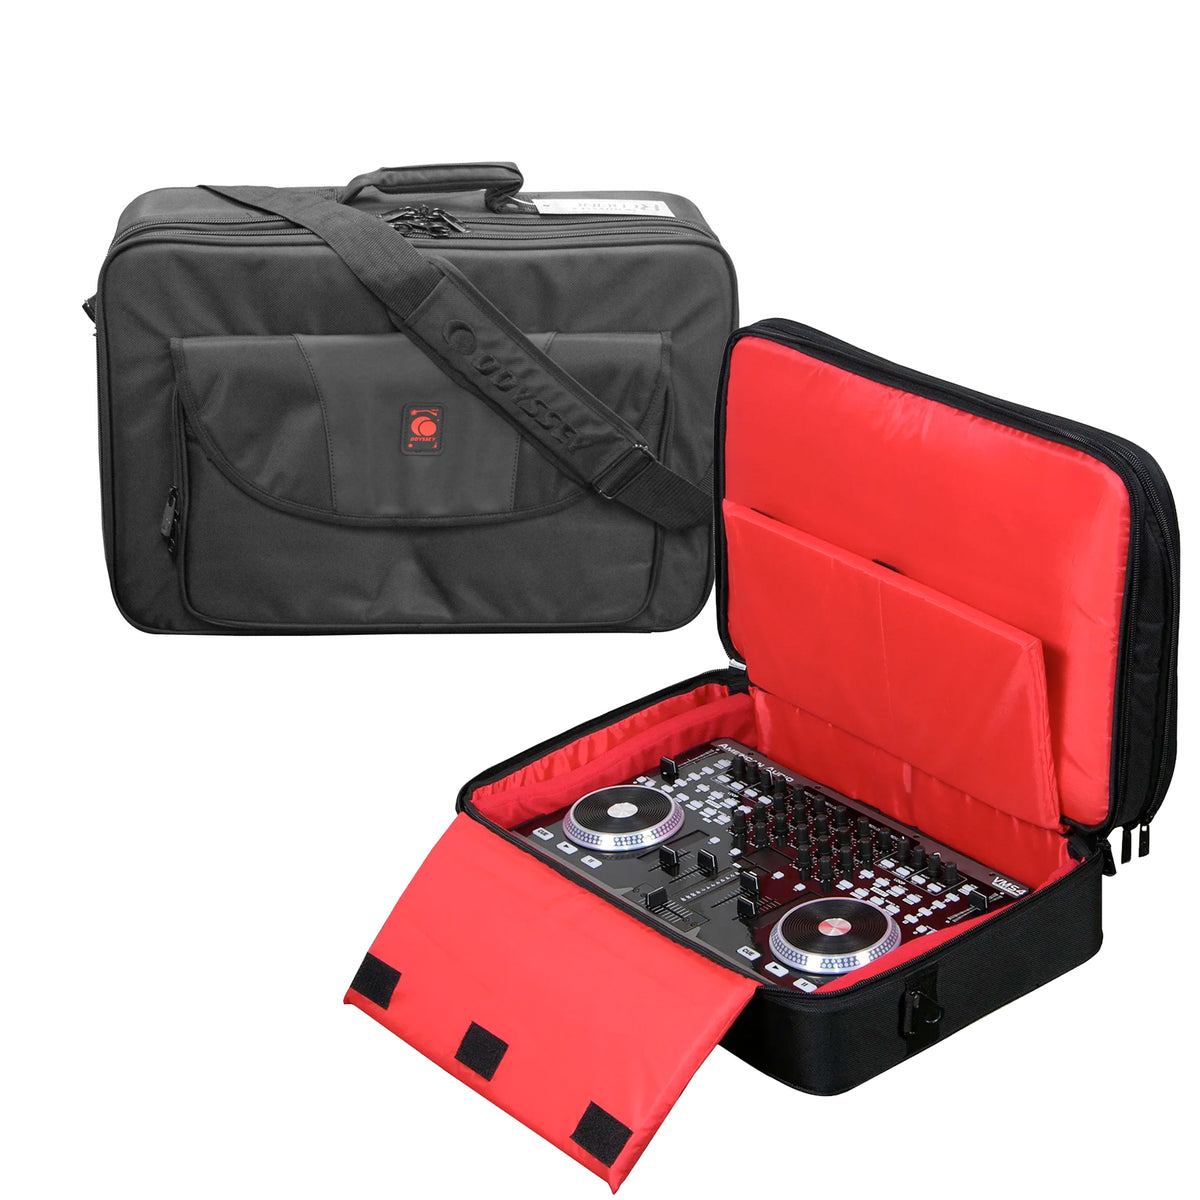 Odyssey: Redline Series Digital Media Bag (BRLDIGITALXL)